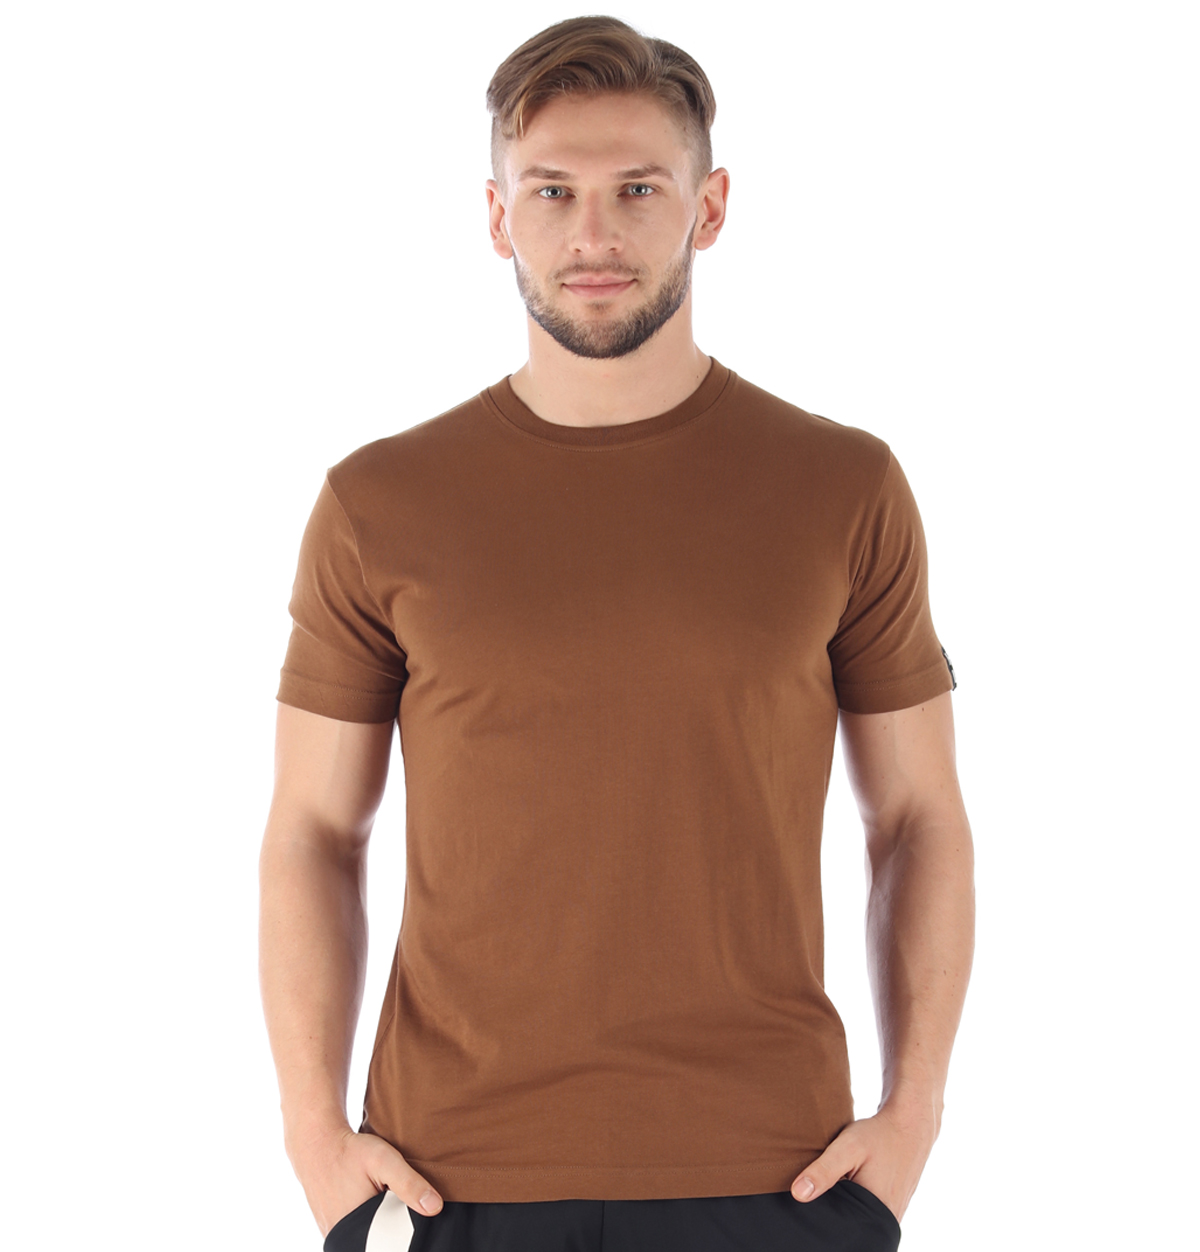 MRNT_SAINT01_DARK_BROWN_FRONT.jpg